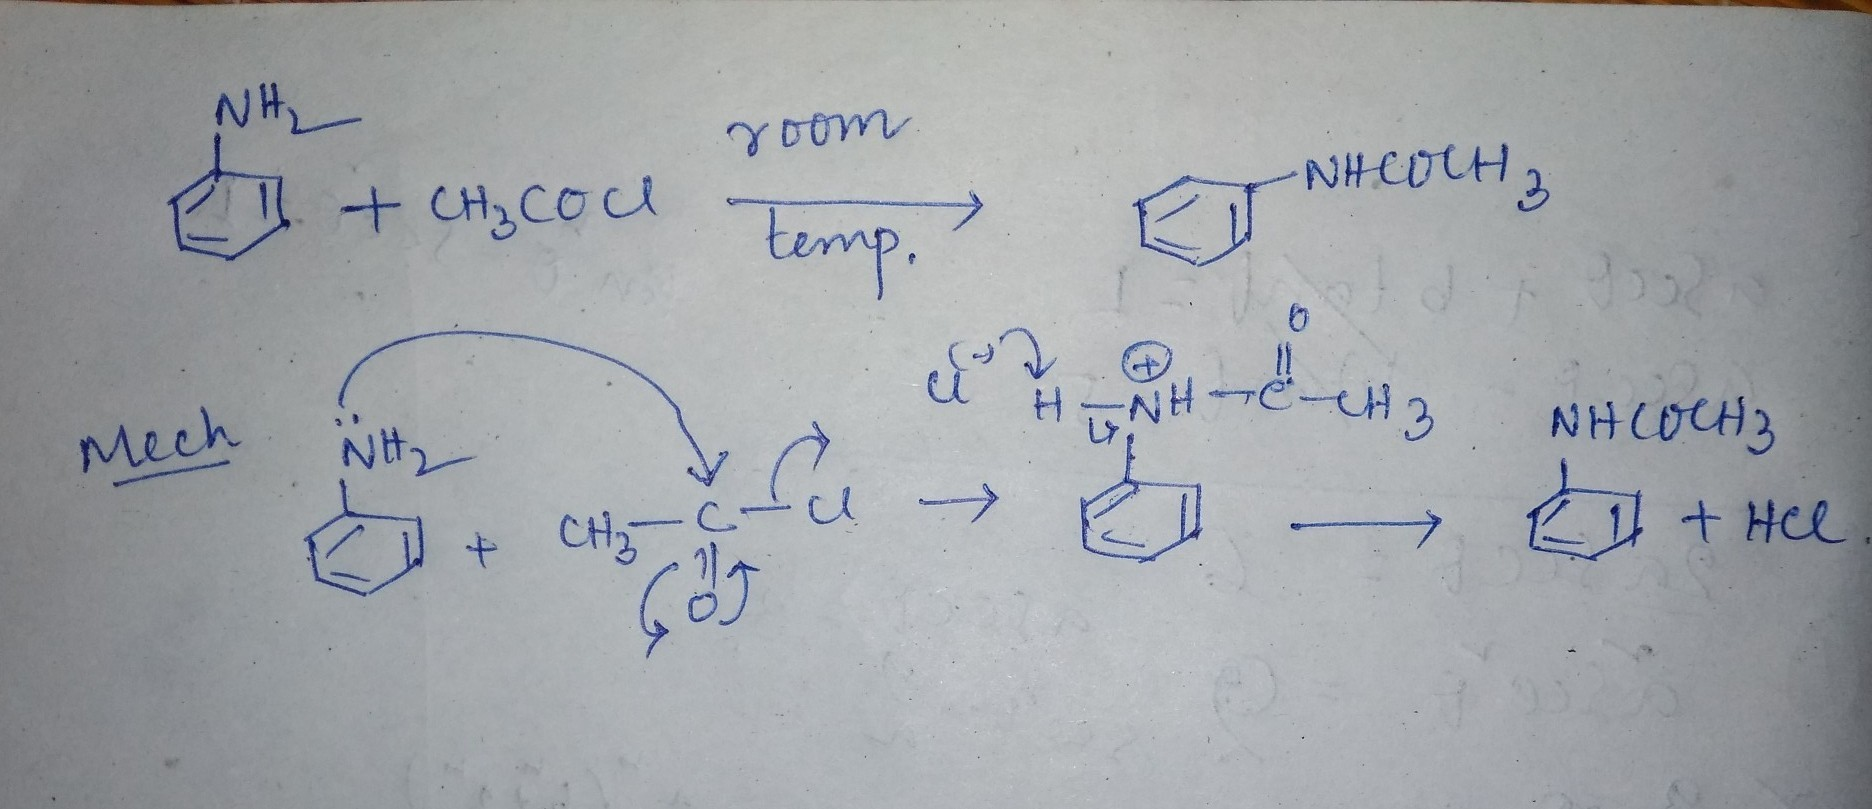 Acetanilide synthesis mechanism fron aniline and acetyl